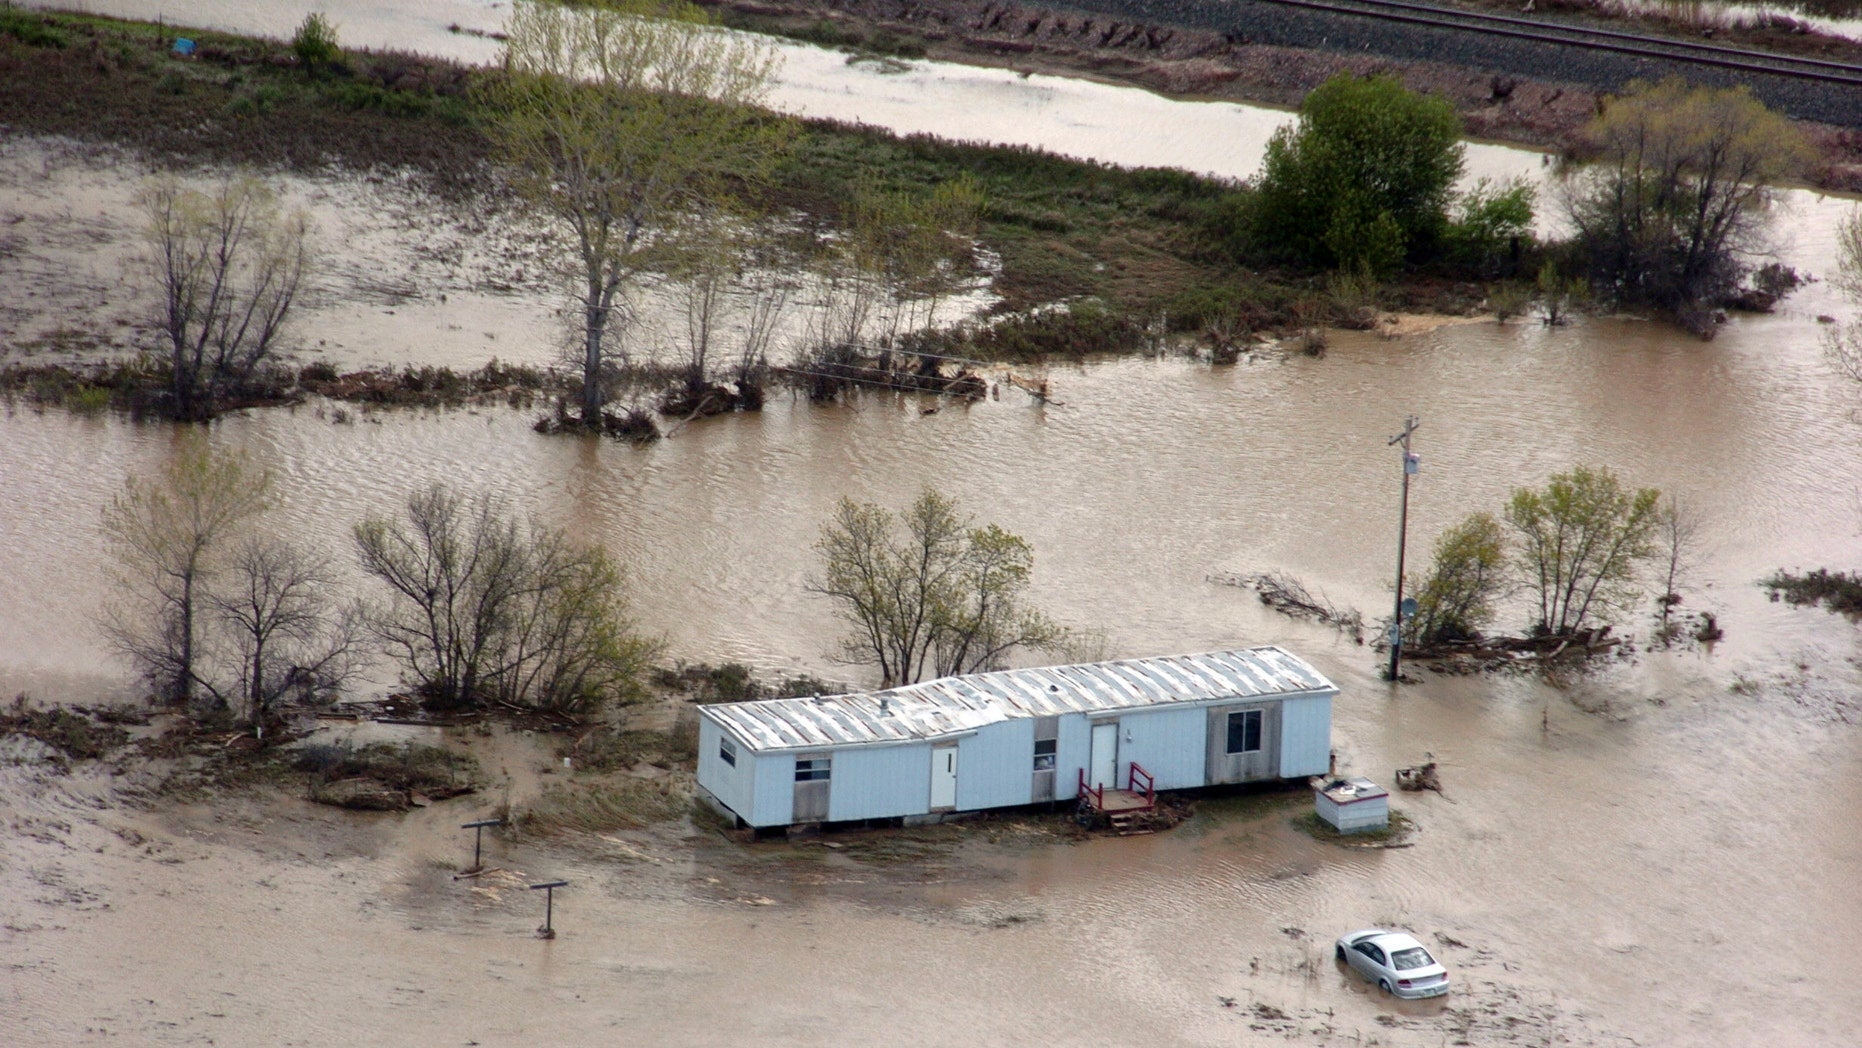 May 27: A flooded mobile home near Crow Agency, Mont. Recent flooding displaced hundreds of residents of the Crow Indian Reservation and damaged an estimated 200 homes. (AP)